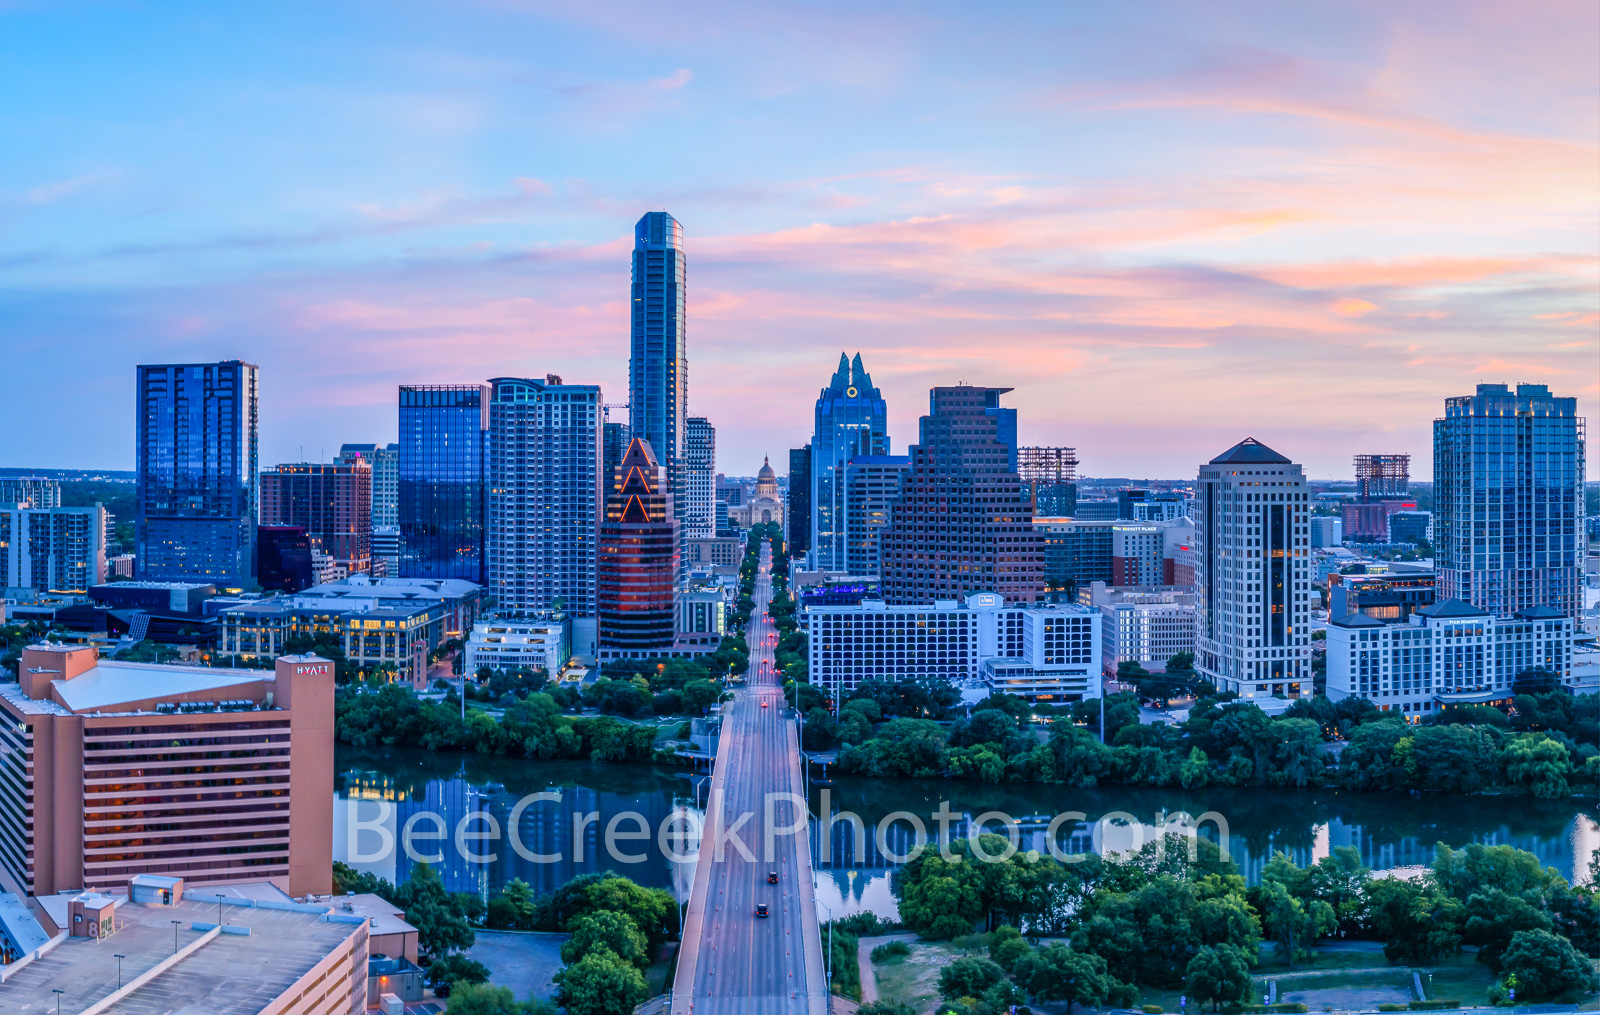 austin skyline, austin texas sunrise, texas,  austin tx, Austin, texas capitol, downtown austin, austin, city of austin, sunset, congress bridge, architecture, sunrise, pinks, yellow, purple,, photo